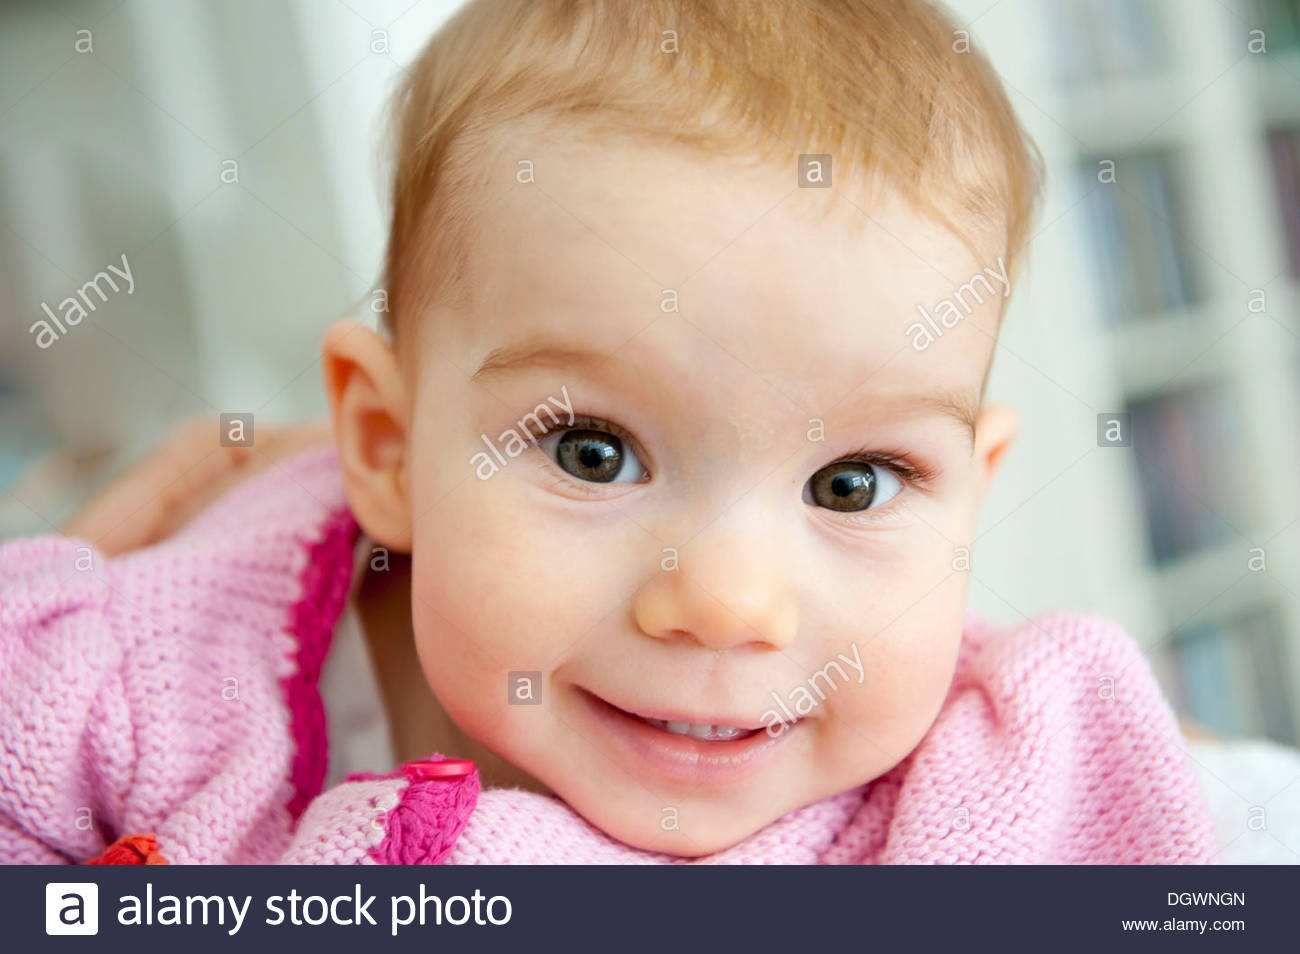 Wide eyed smiling toddler, girl, portrait, Munich, Bavaria - Stock Image